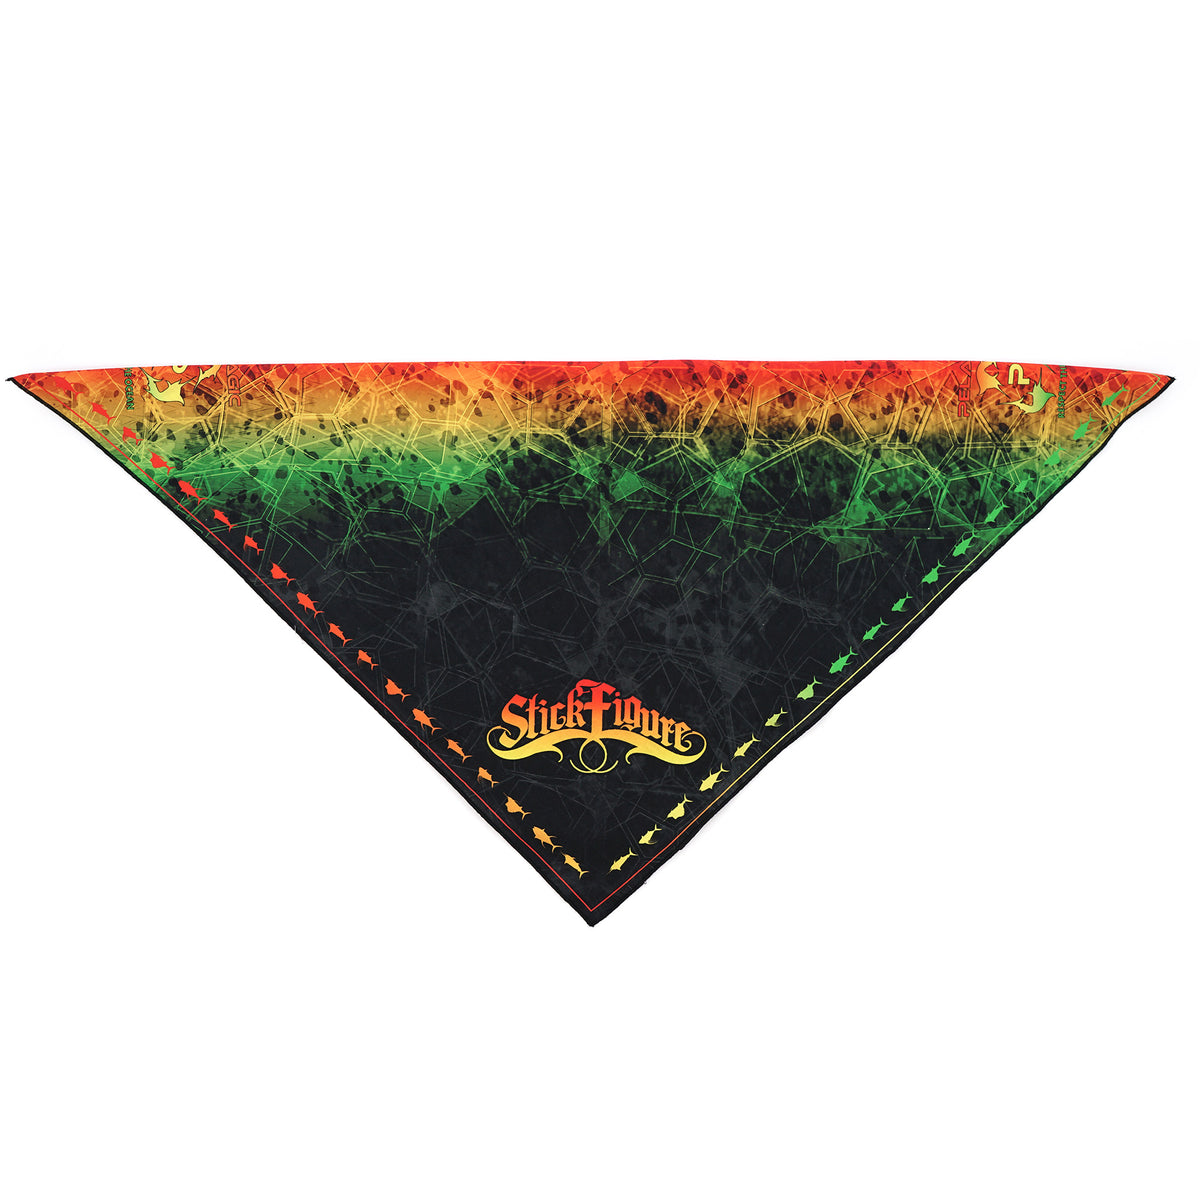 Stick Figure Bandana Black Big Image - 2